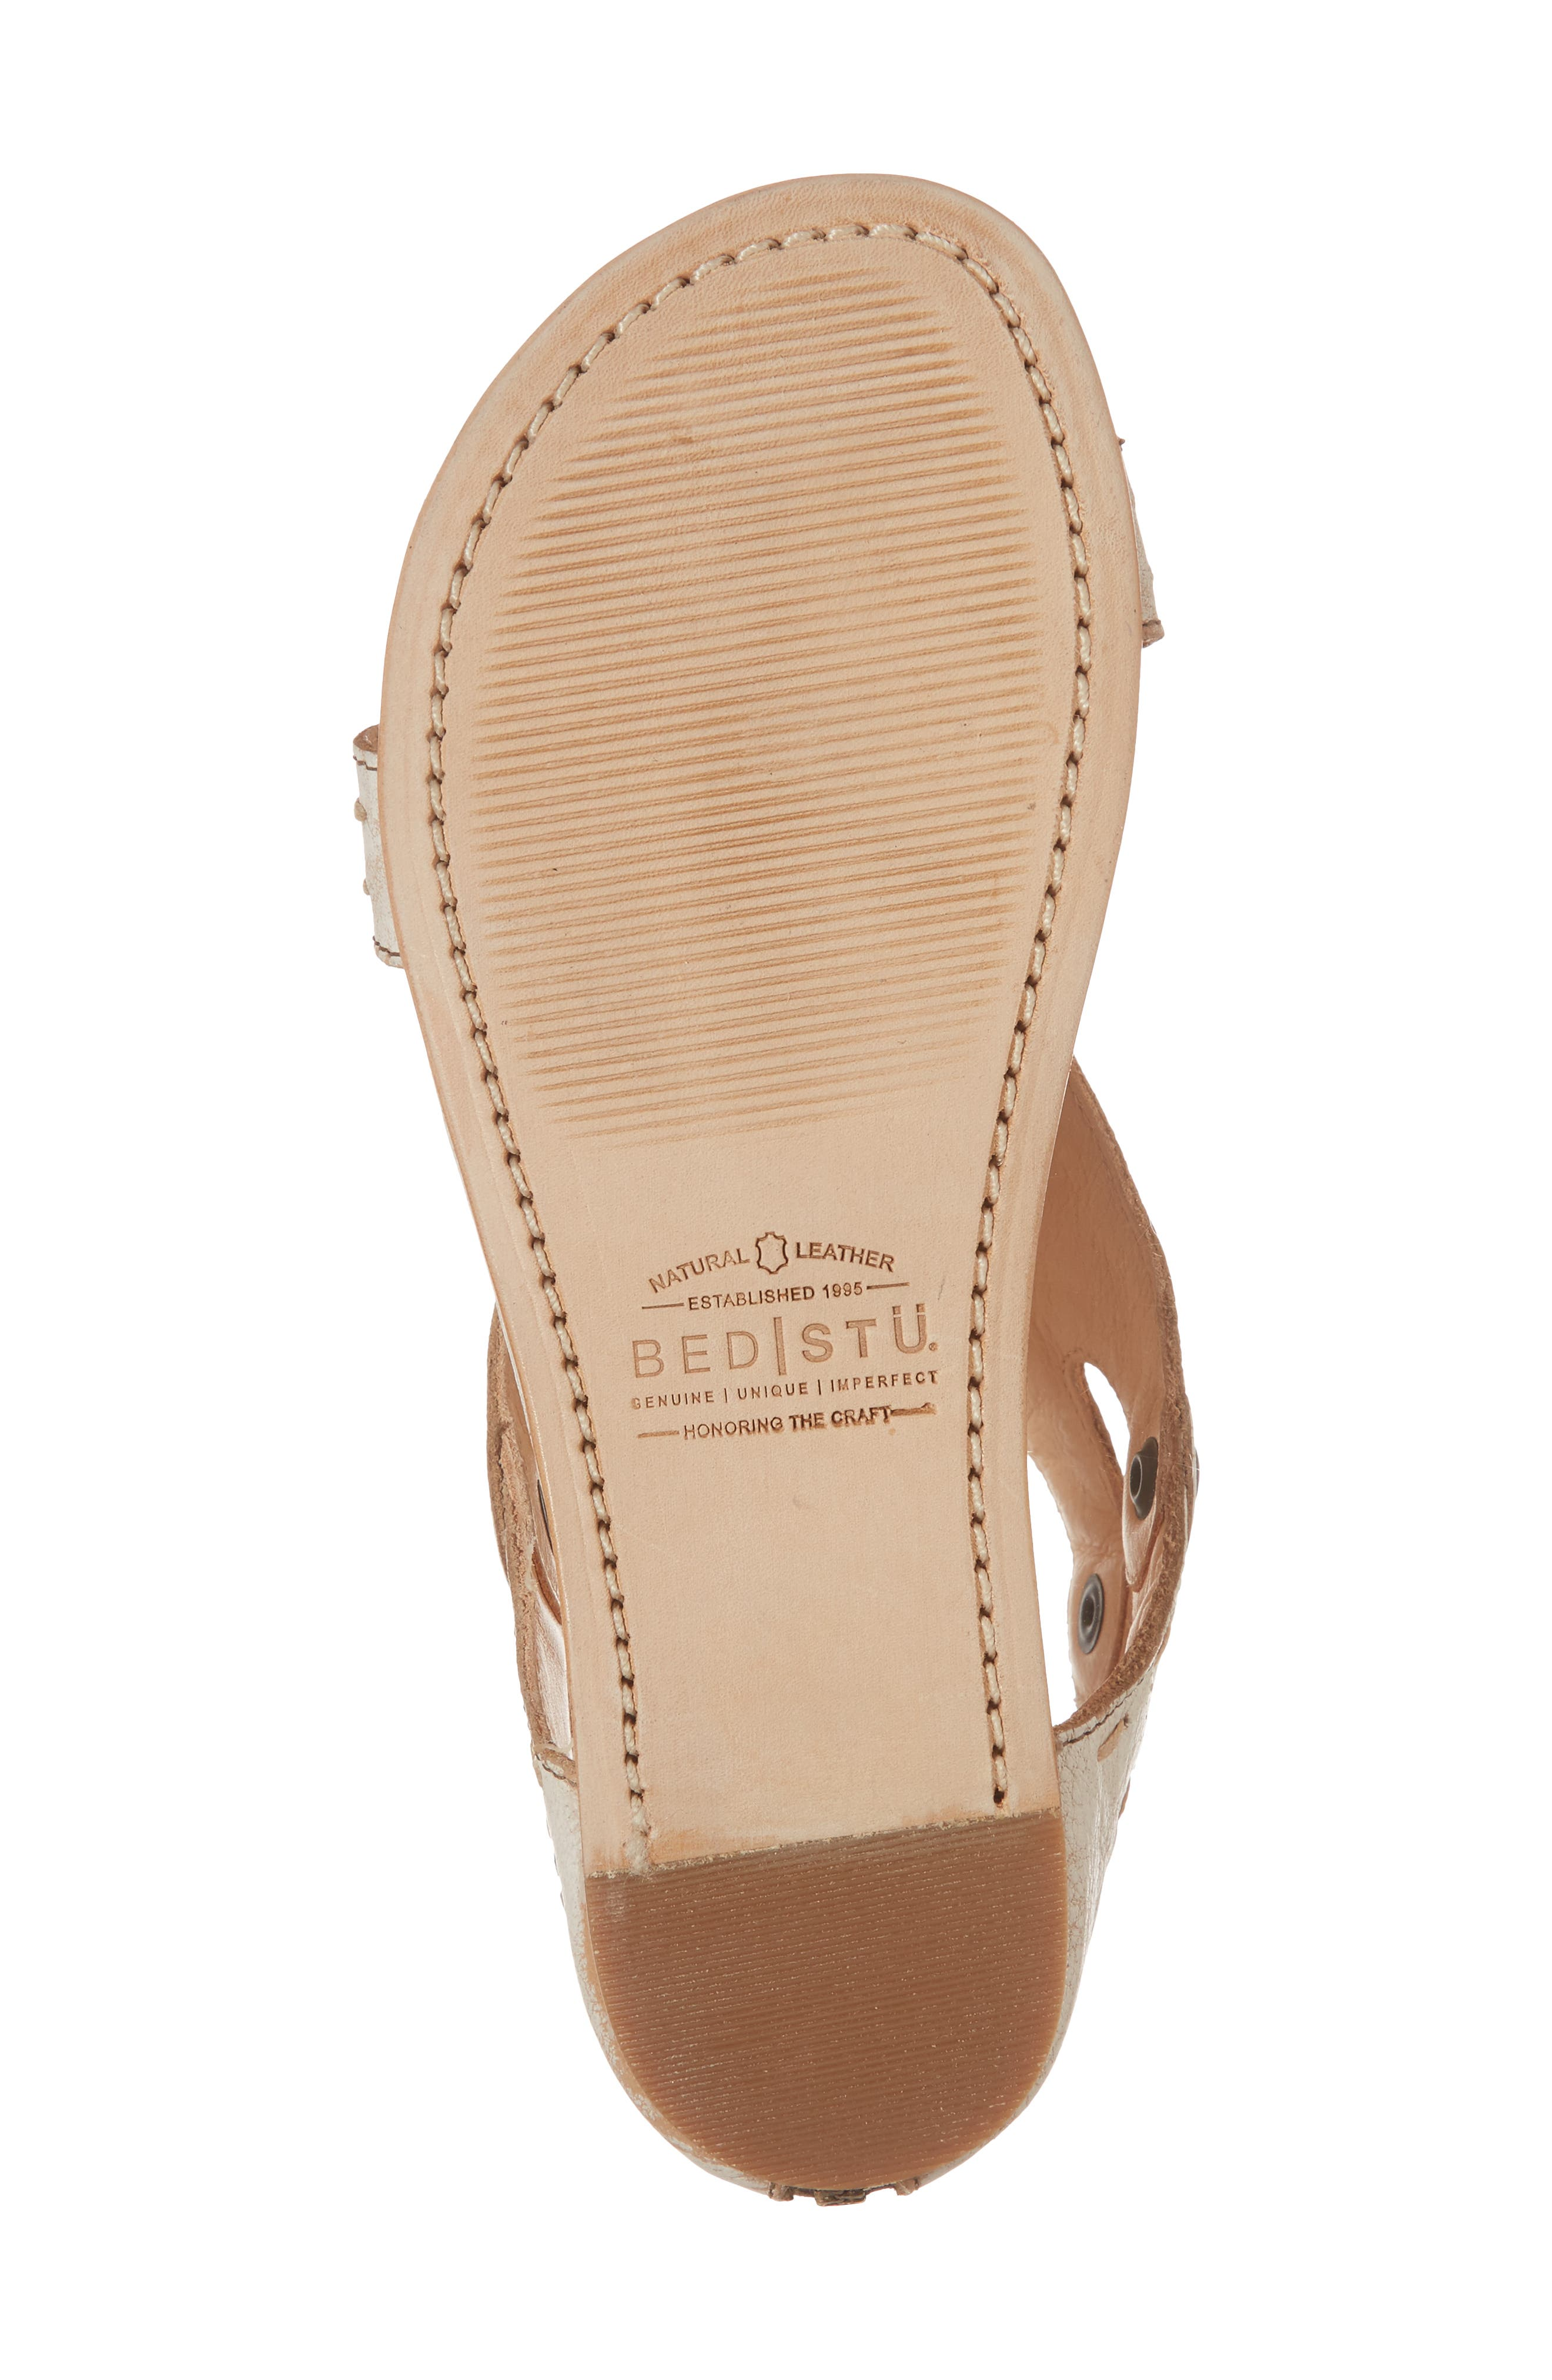 Soto Sandal,                             Alternate thumbnail 6, color,                             Nectar Leather